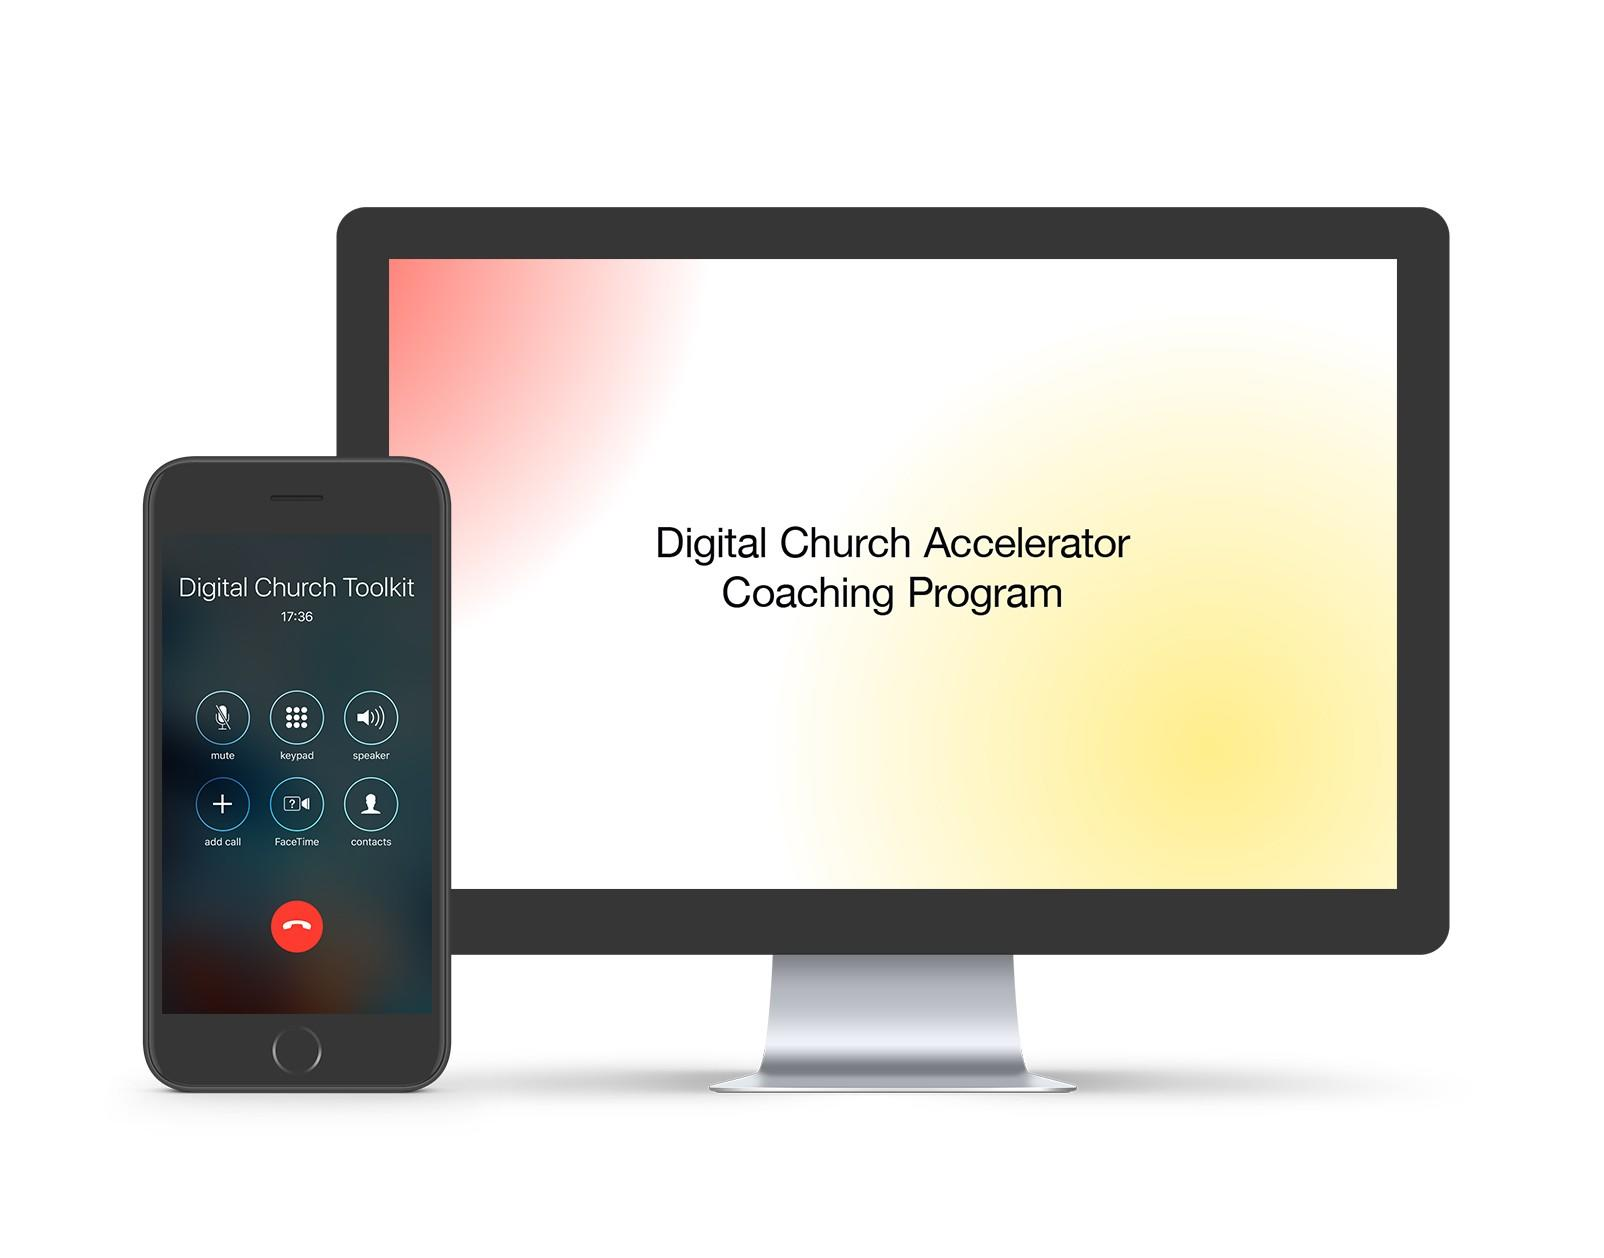 Digital Church Accelerator Coaching Program